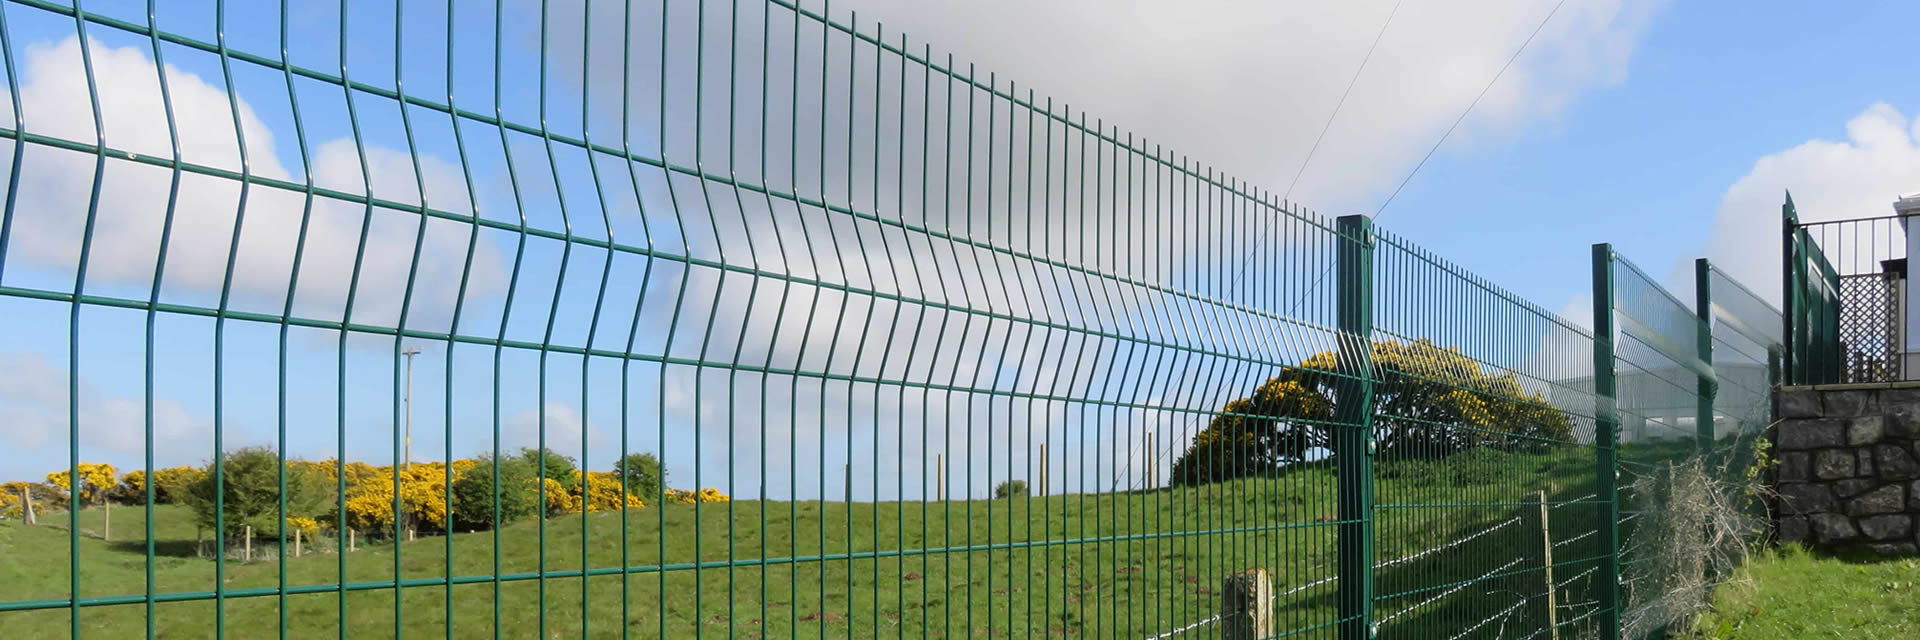 Versatile Welded Wire Mesh Panel Fence And Expanded Metal